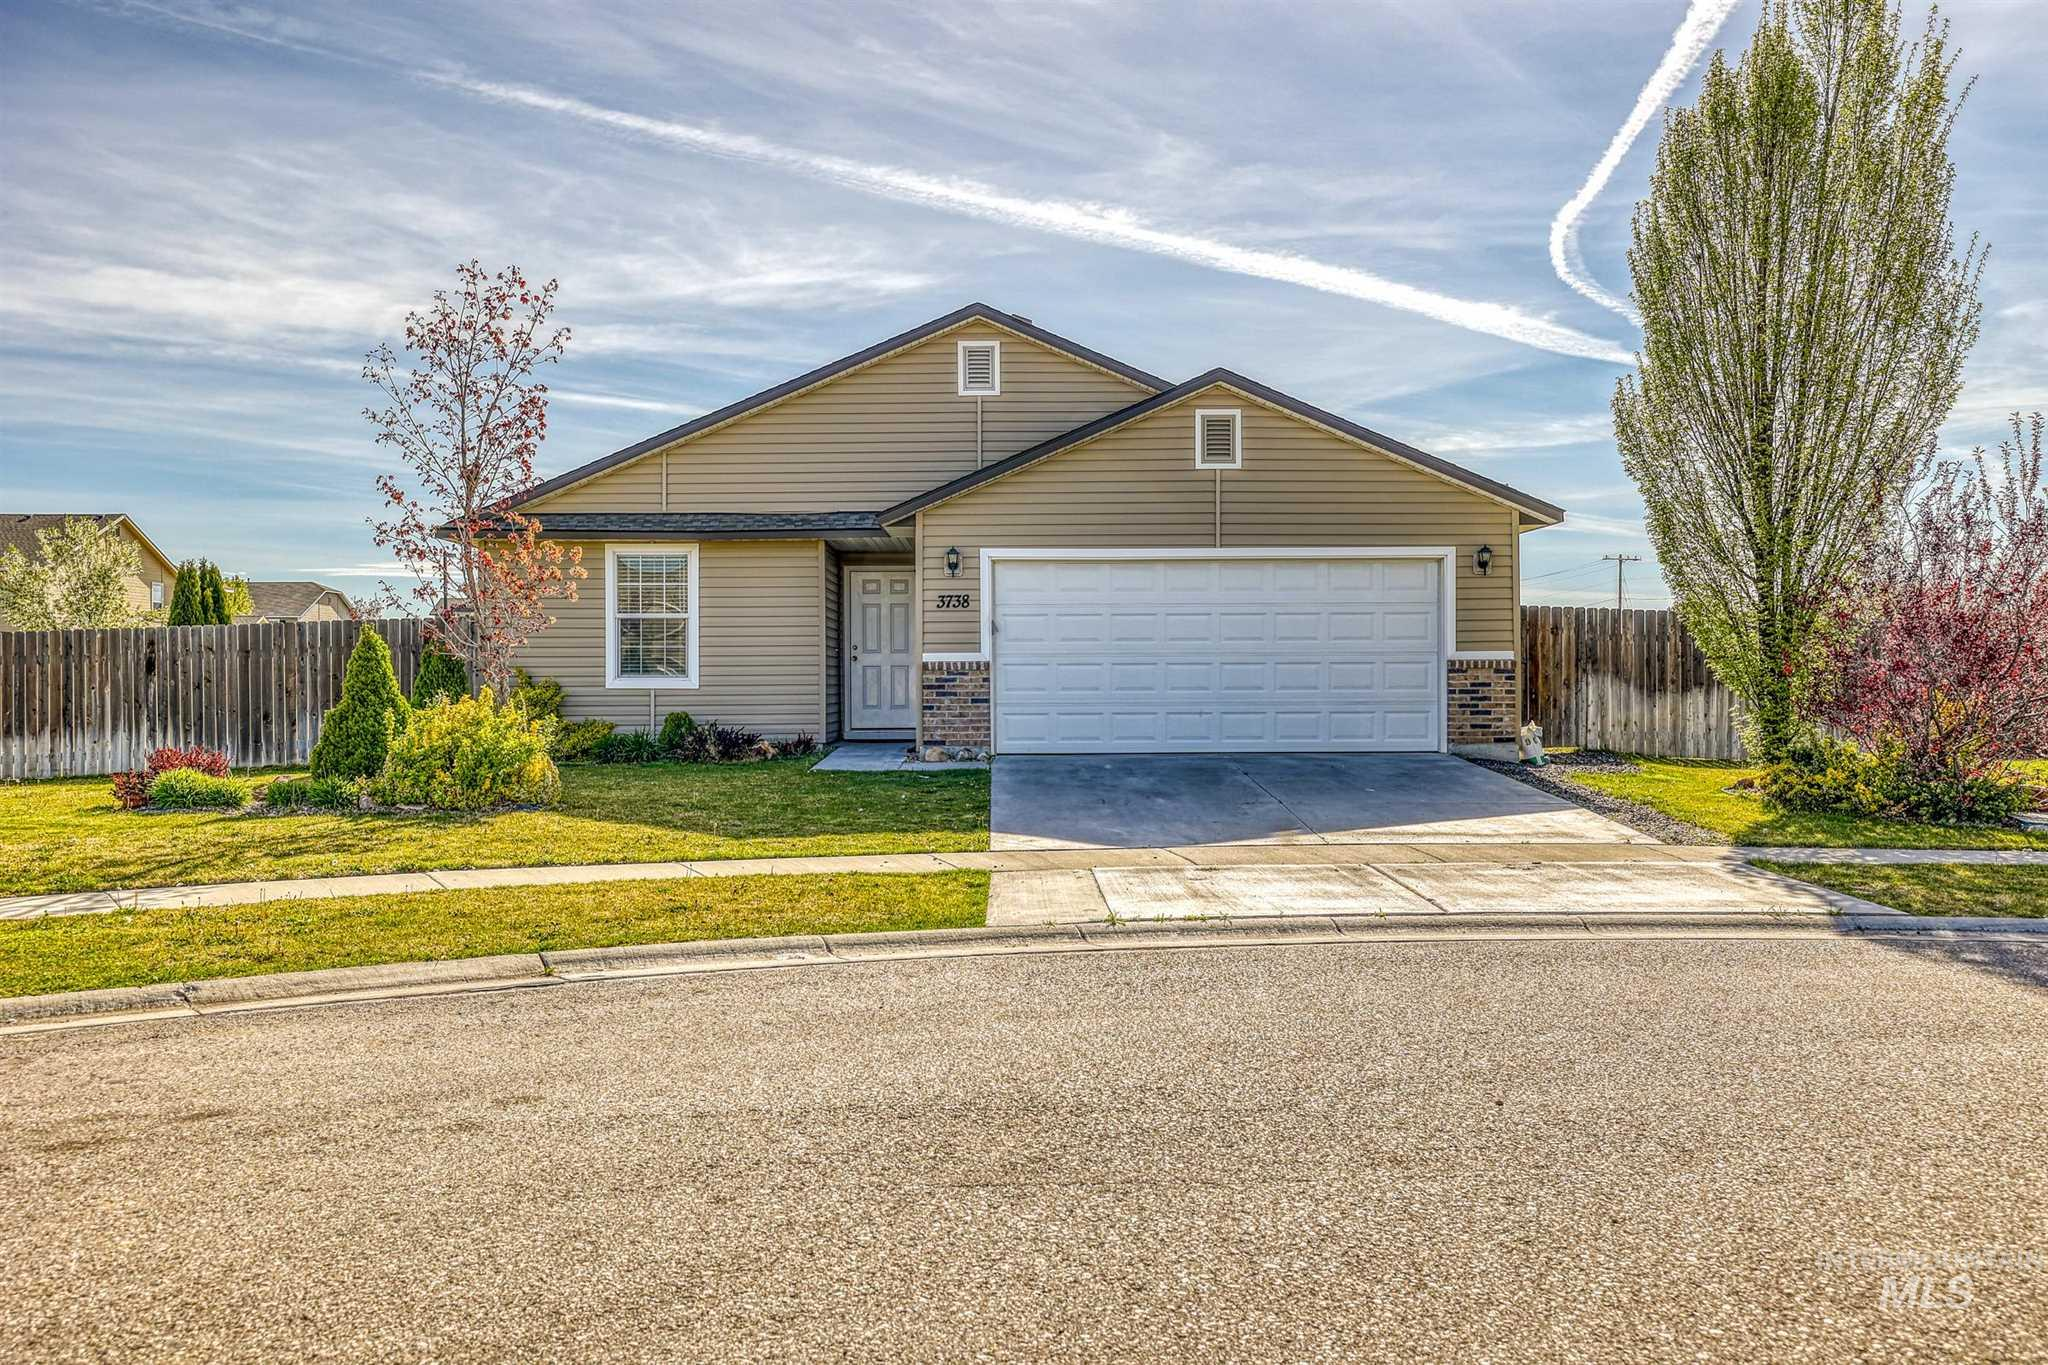 3738 S PALM SPRINGS Property Photo - Nampa, ID real estate listing